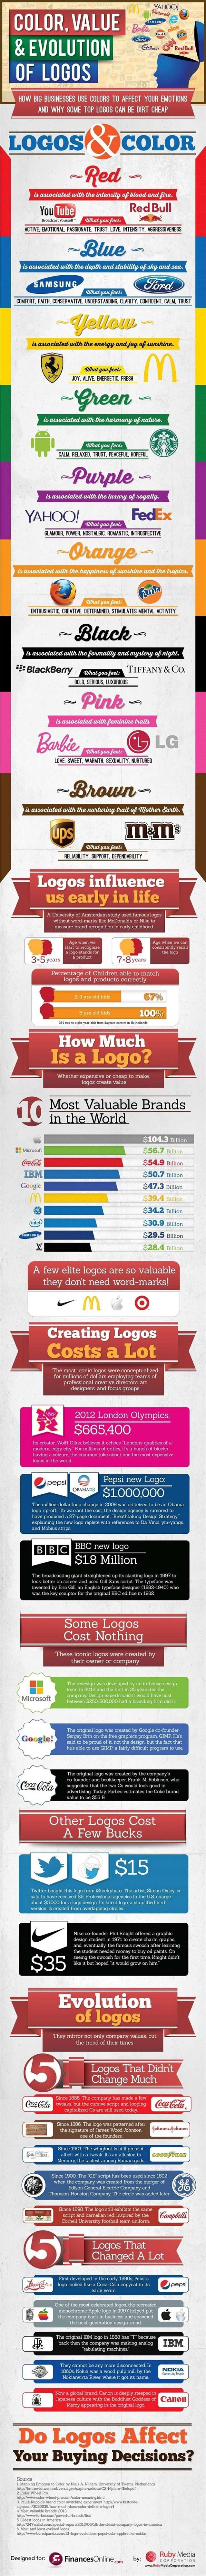 Graphic Design - How Big Businesses Use Colors to Affect Your Emotions [Infographic] : MarketingProfs Article